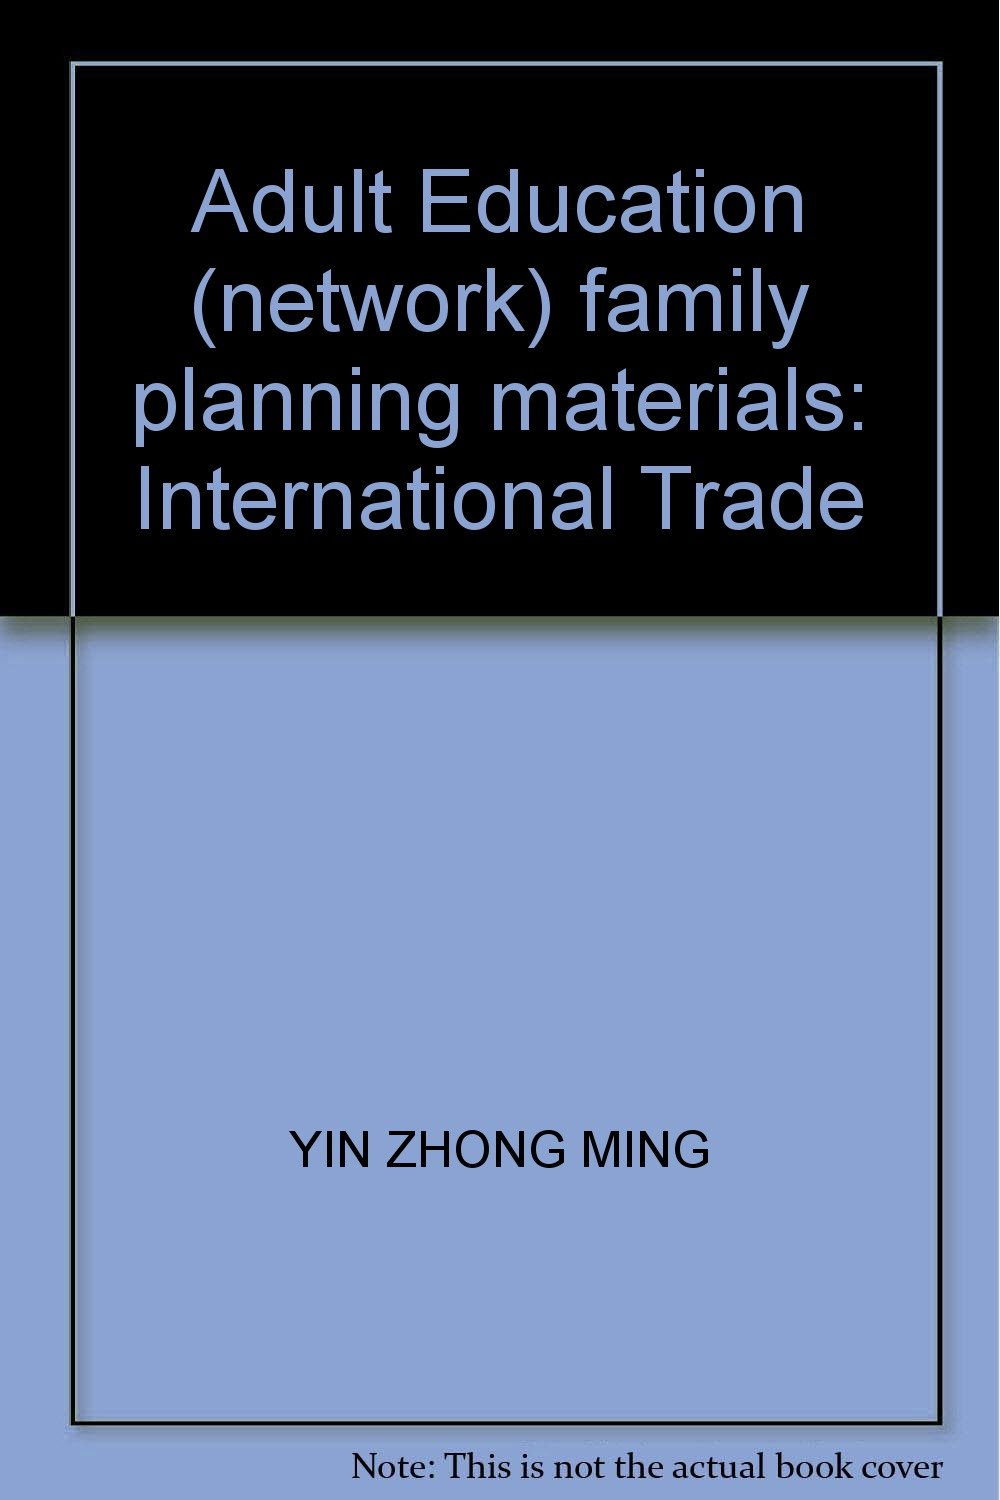 Download Adult Education (network) family planning materials: International Trade PDF